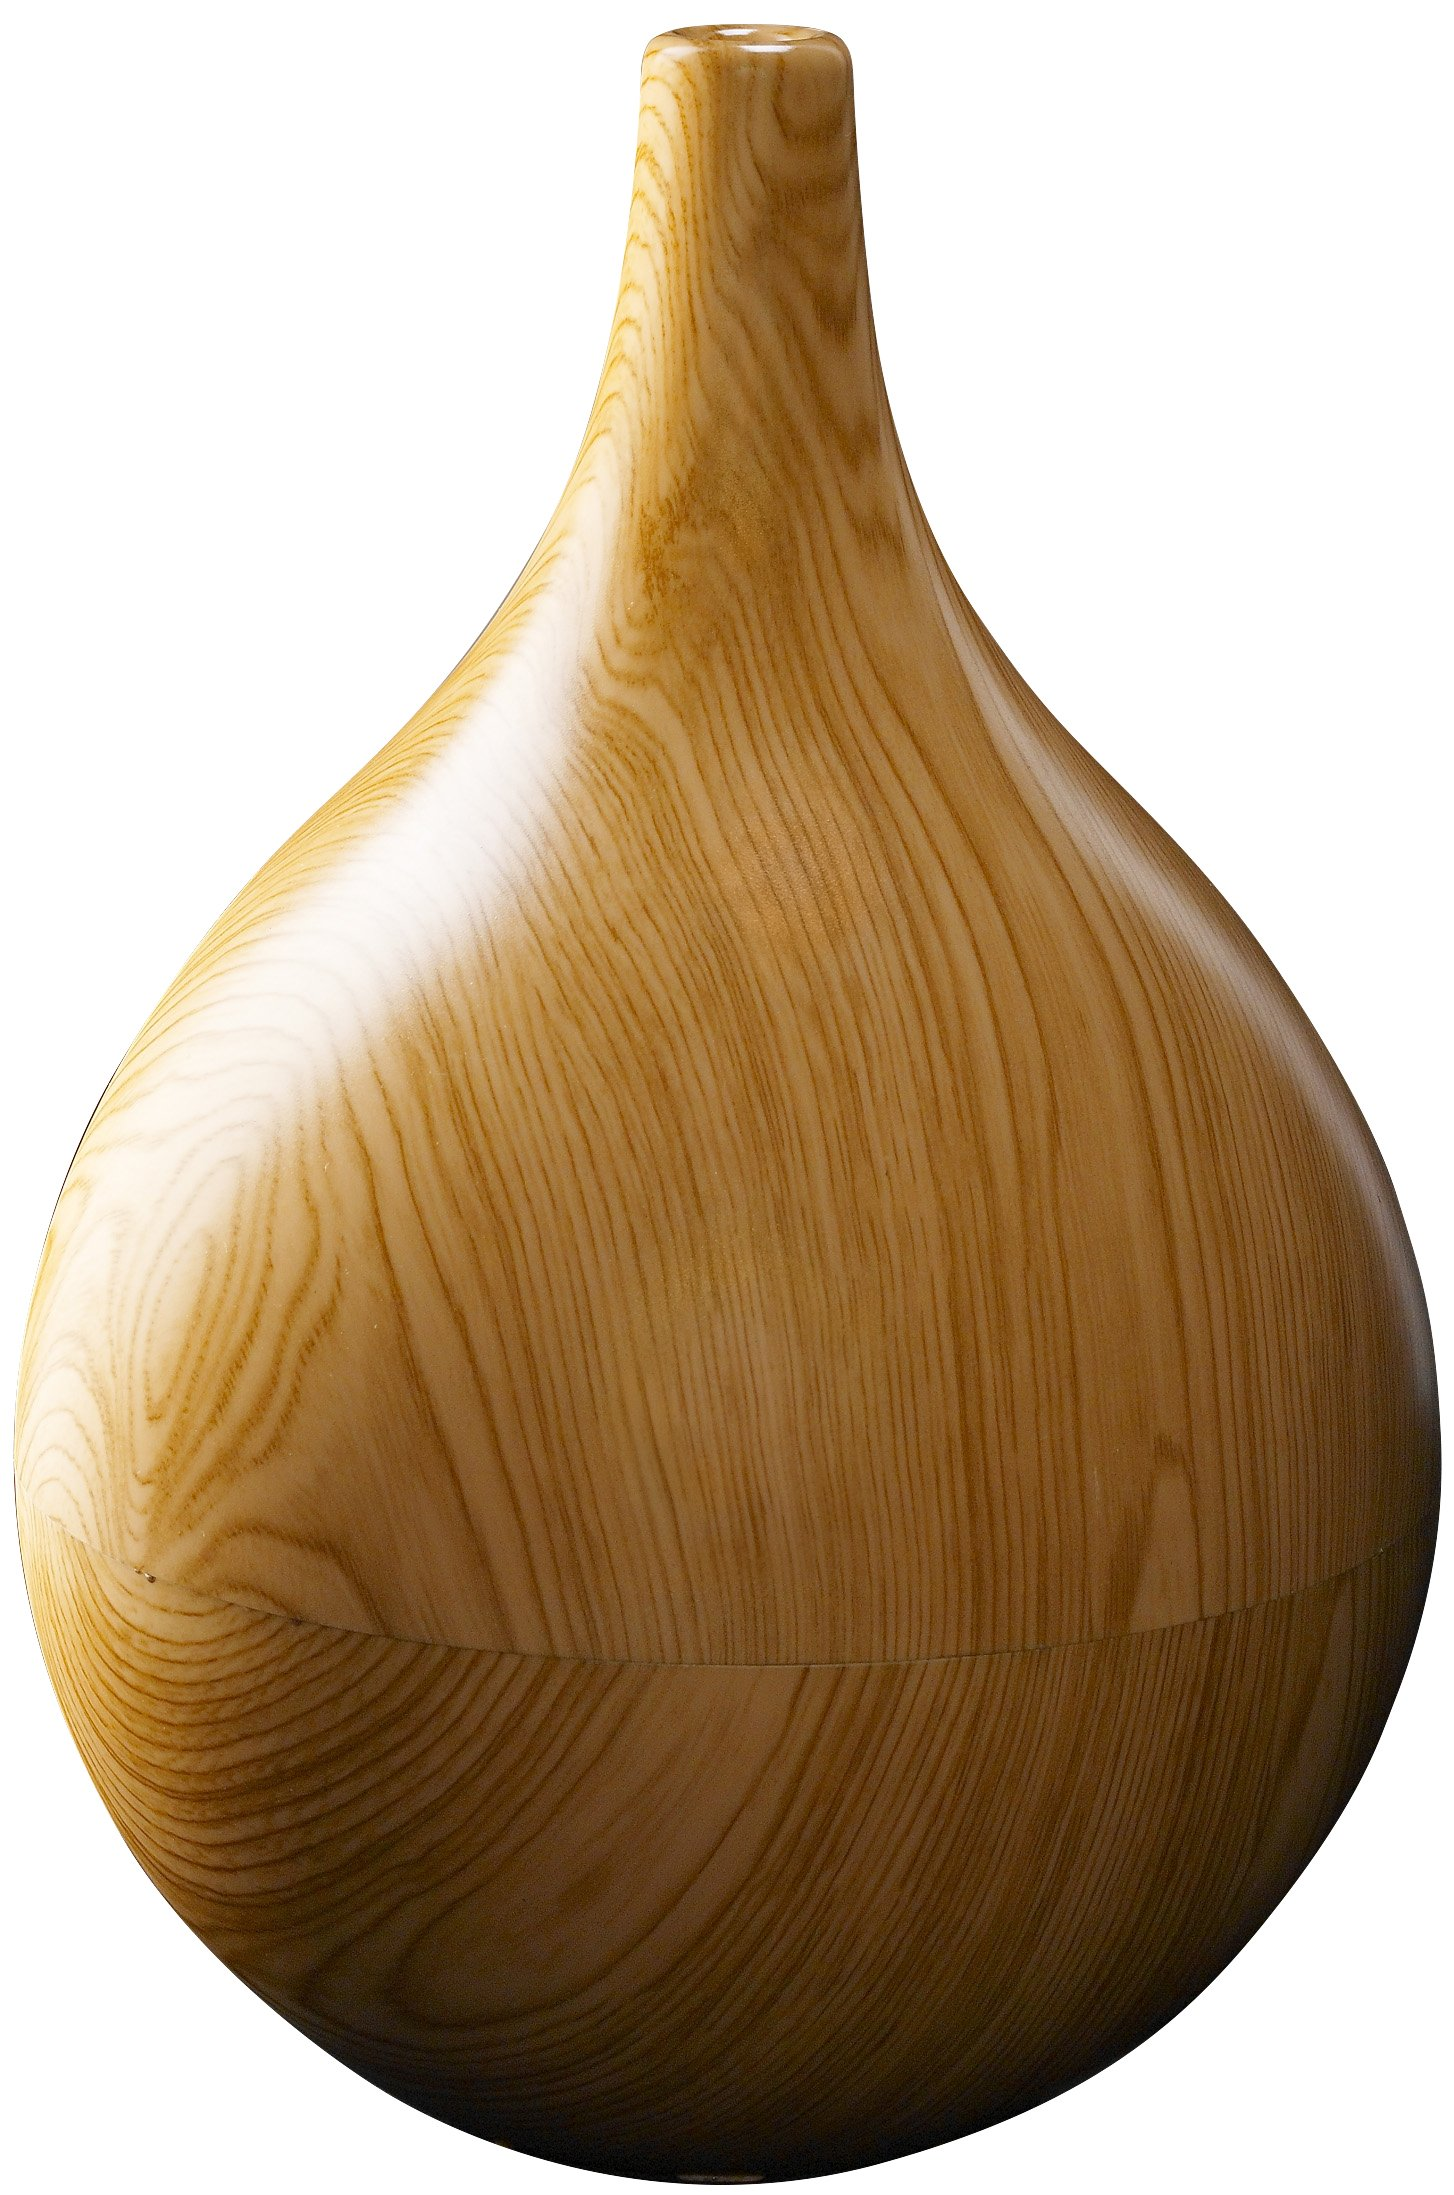 middle colors hybrid humidifier Natural Wood MD-KH1401 NWD From import JPN by Doshisha (Image #1)